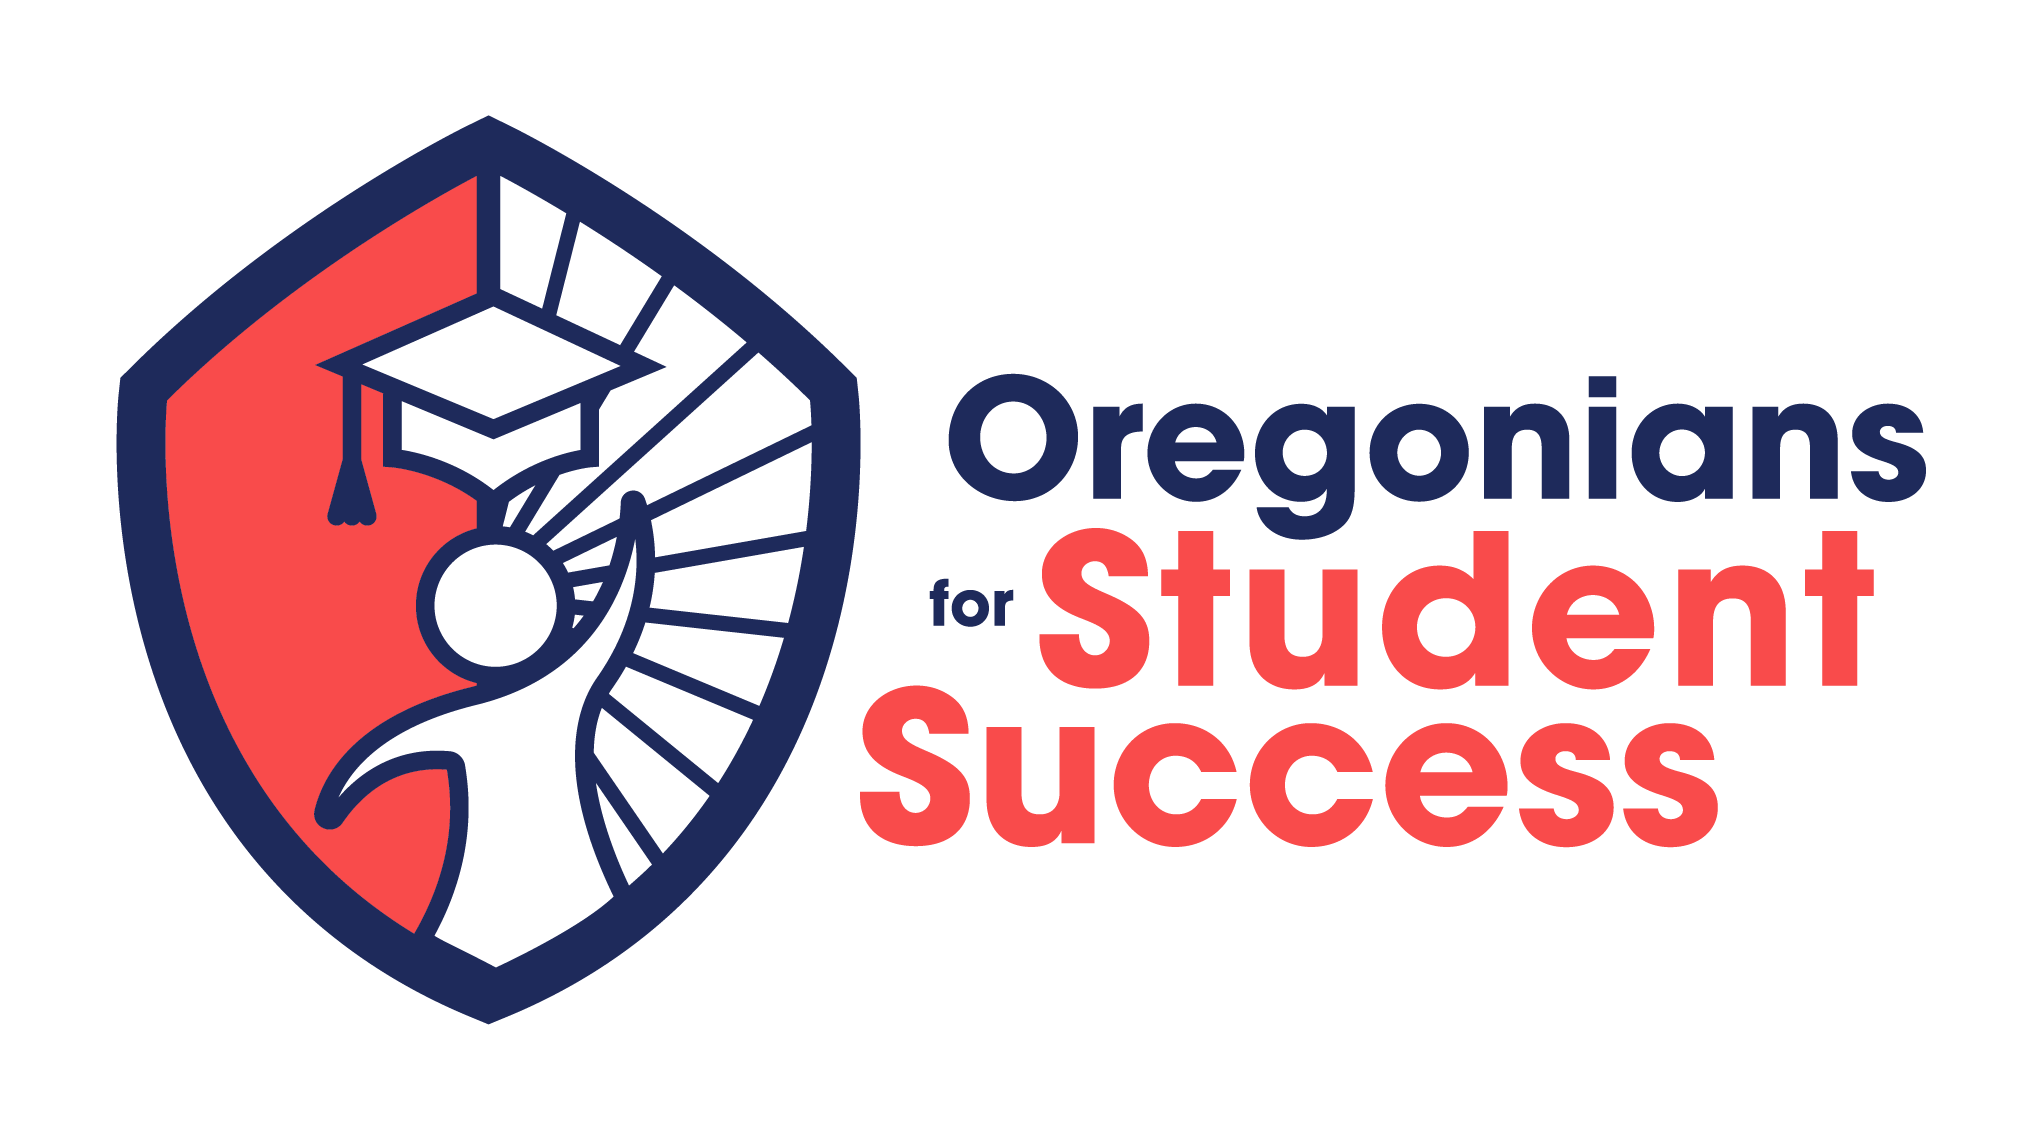 Oregonians for Student Success